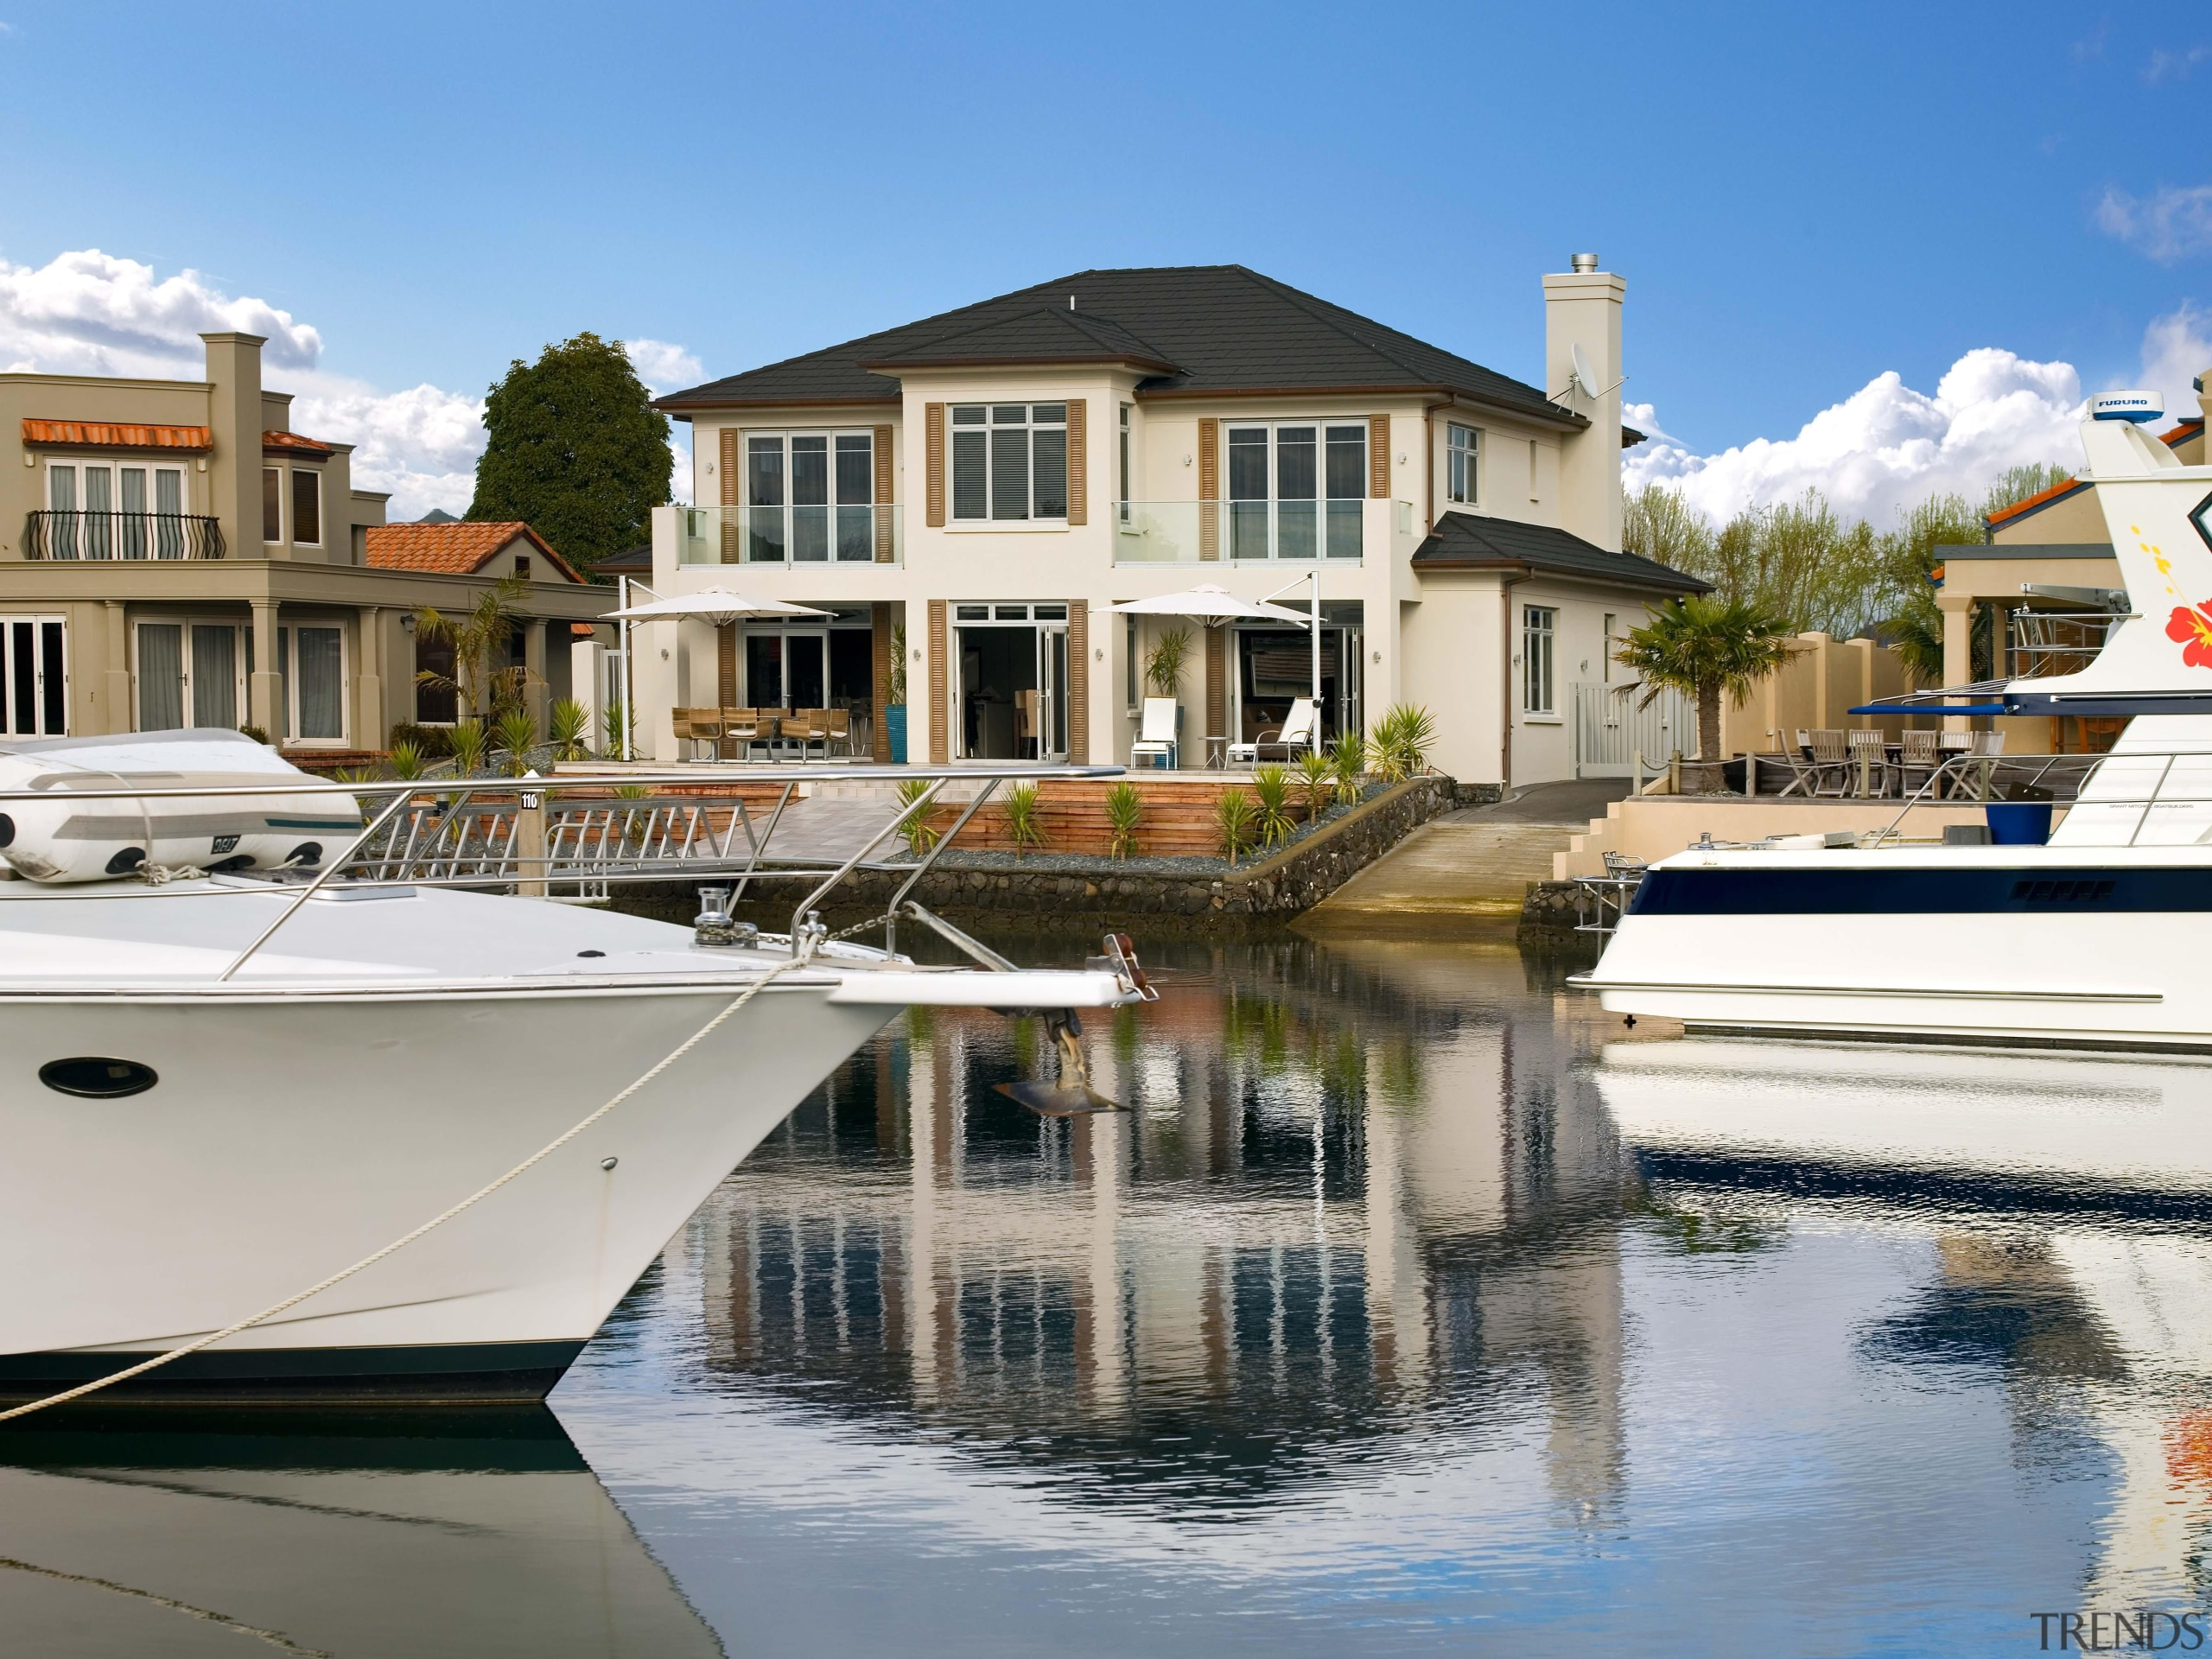 pauanui  mds exterior 1 - pauanui__mds_exterior_1 - boat, condominium, dock, home, house, marina, property, real estate, reflection, residential area, water, water transportation, waterway